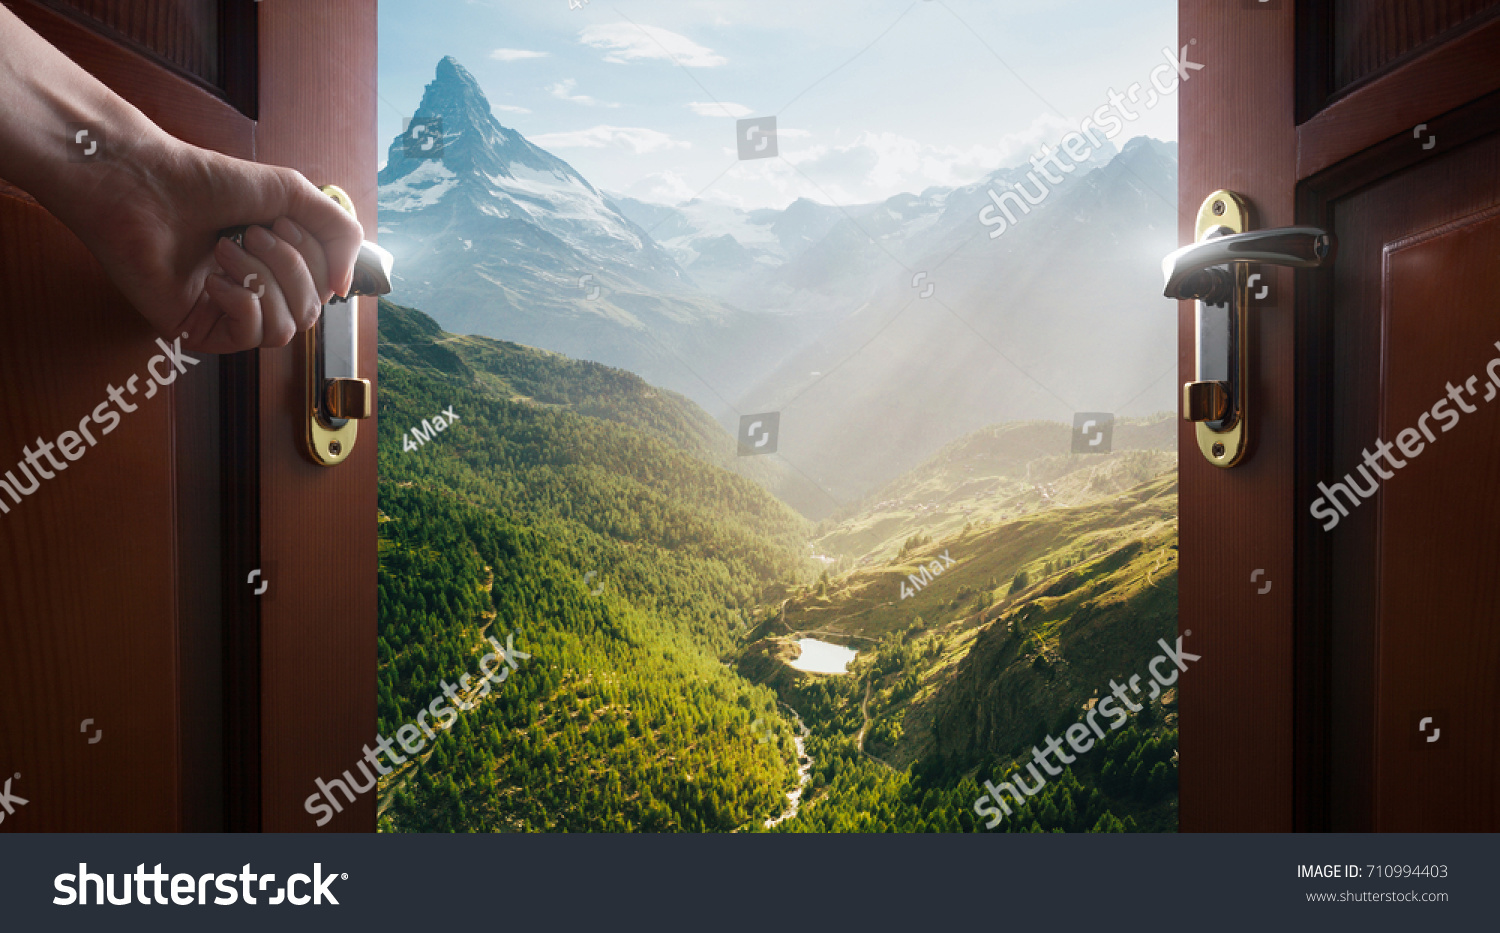 hand opens empty room door to nature and mountains